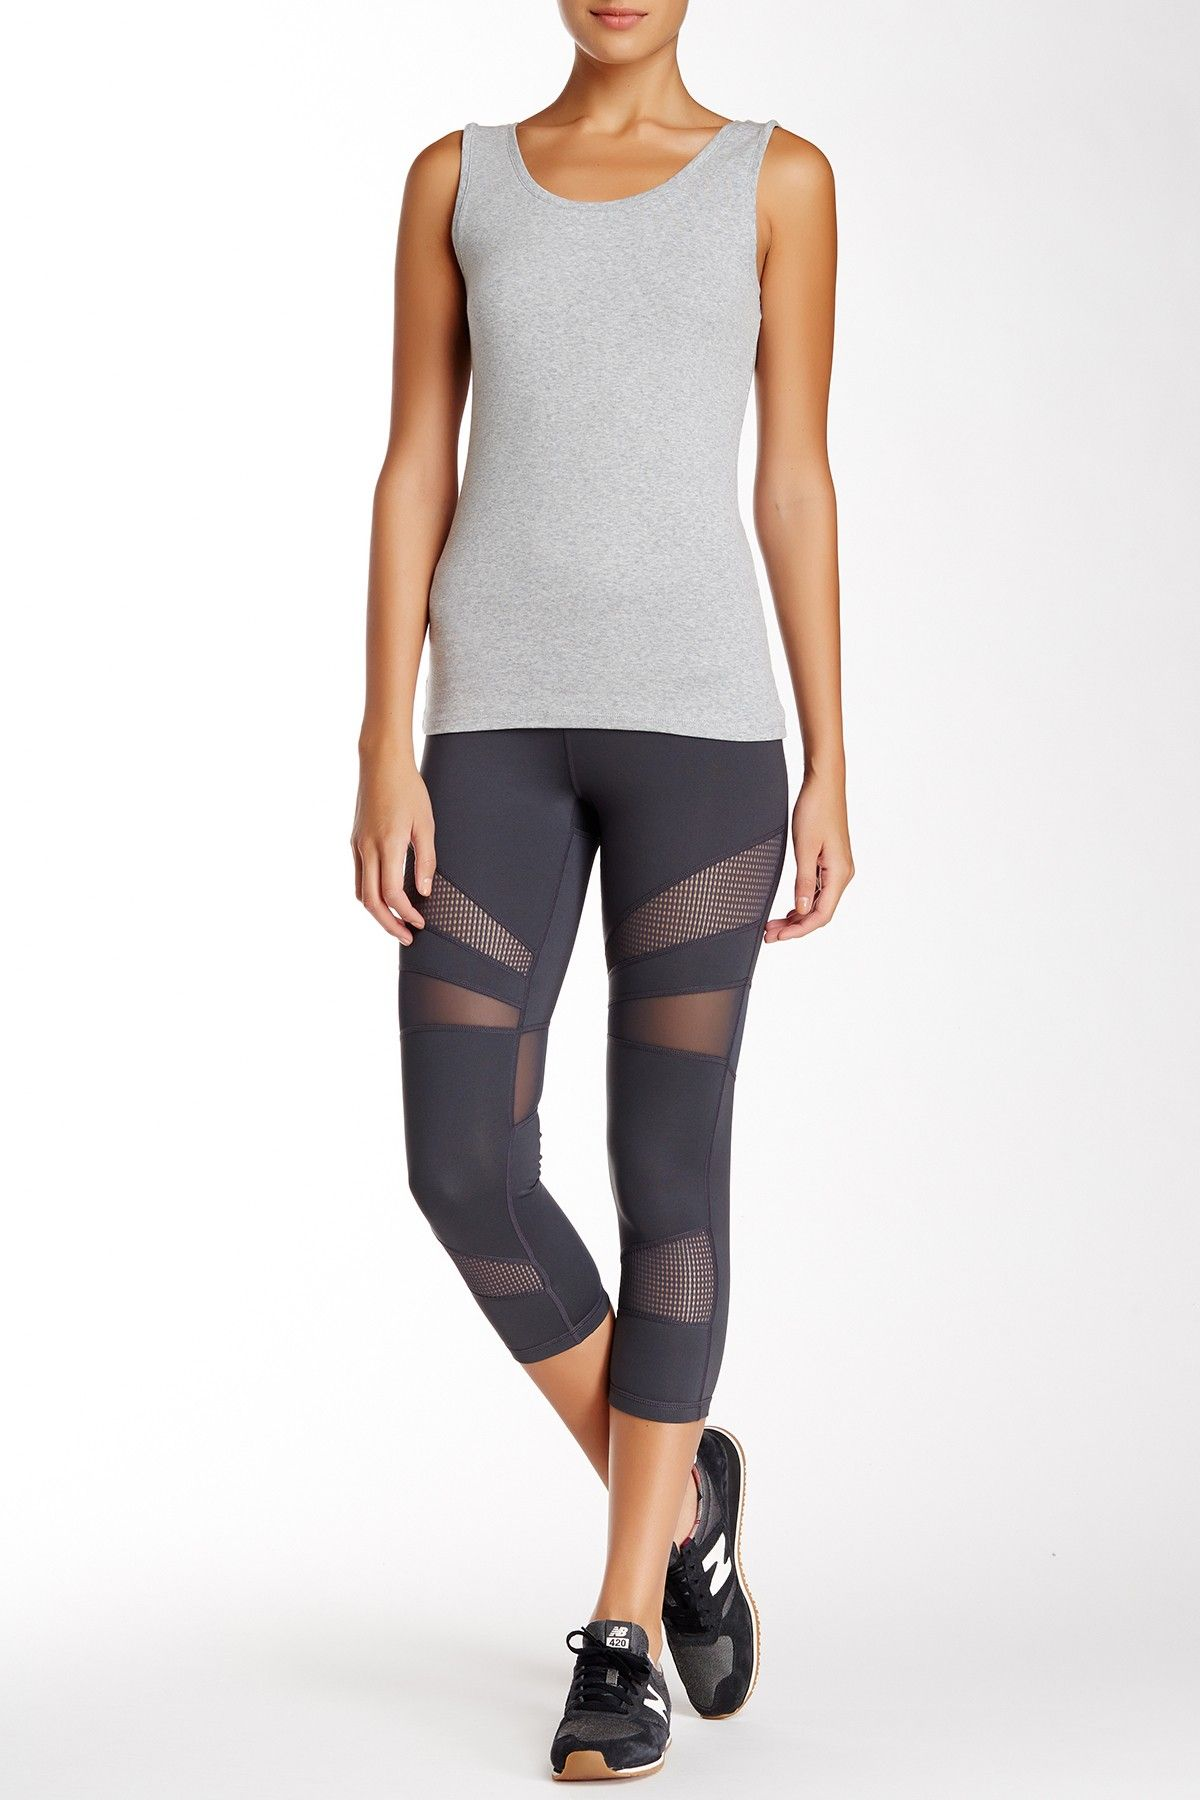 7e6a9aa9e2649 Z By Zella - It Takes Two Long Capri Pant at Nordstrom Rack. Free Shipping  on orders over $100.